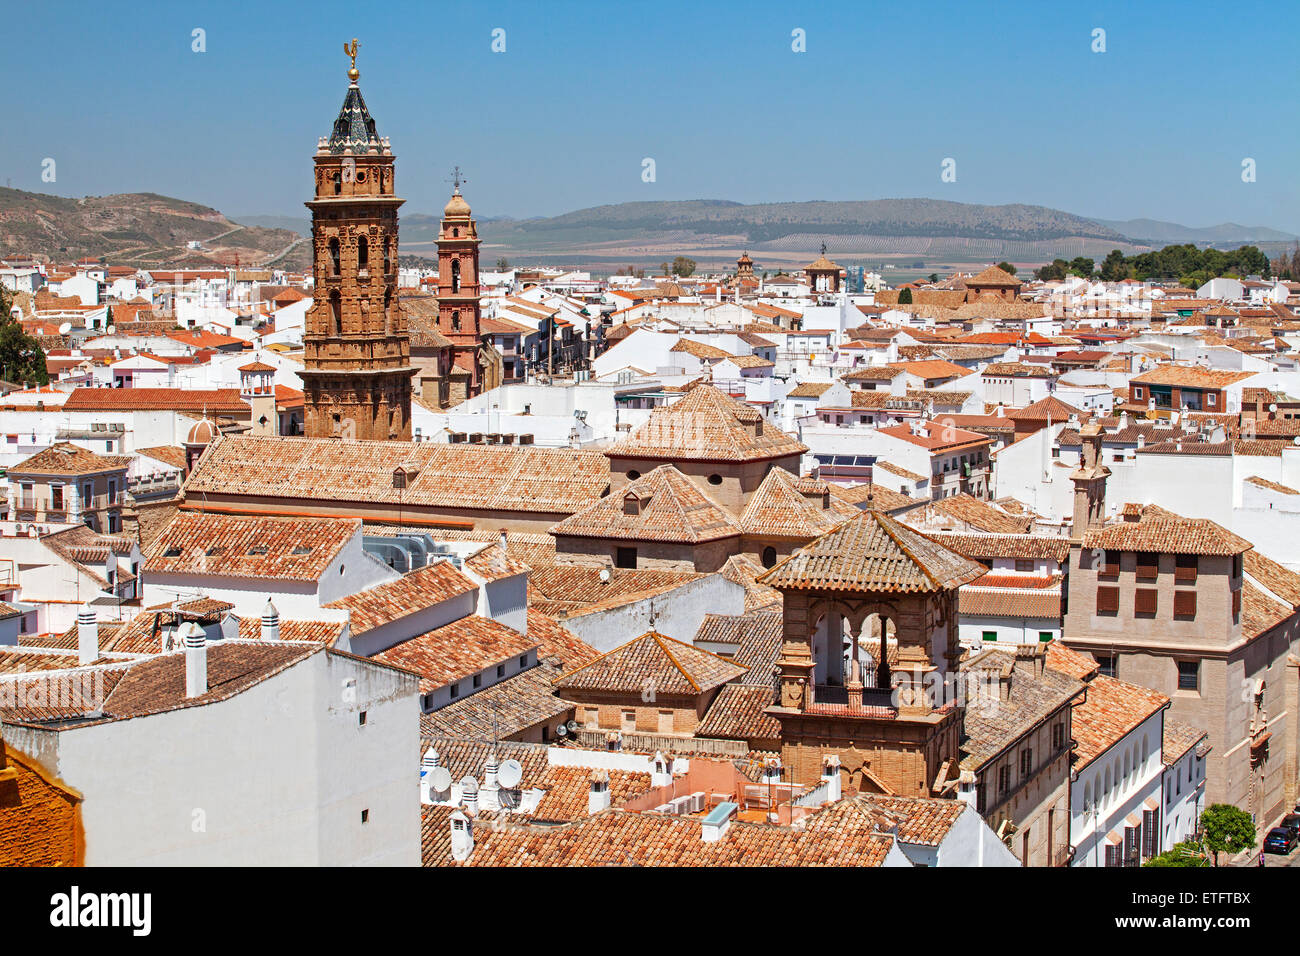 Antequera, Andalucia - A view over the town showing San Sebastian church bell tower - Spain - Stock Image